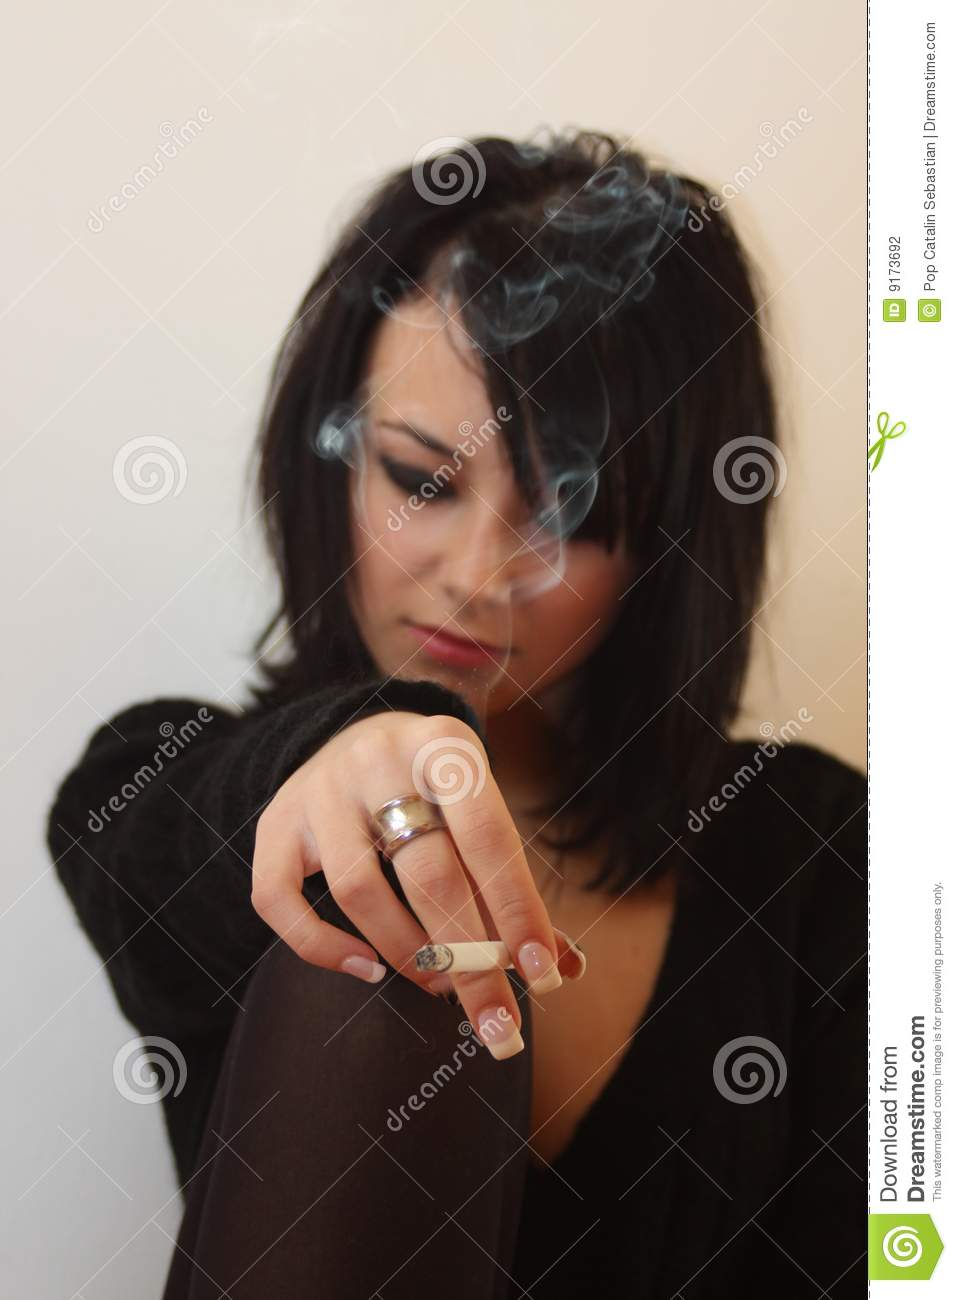 woman with cigar stock photography image 9173692